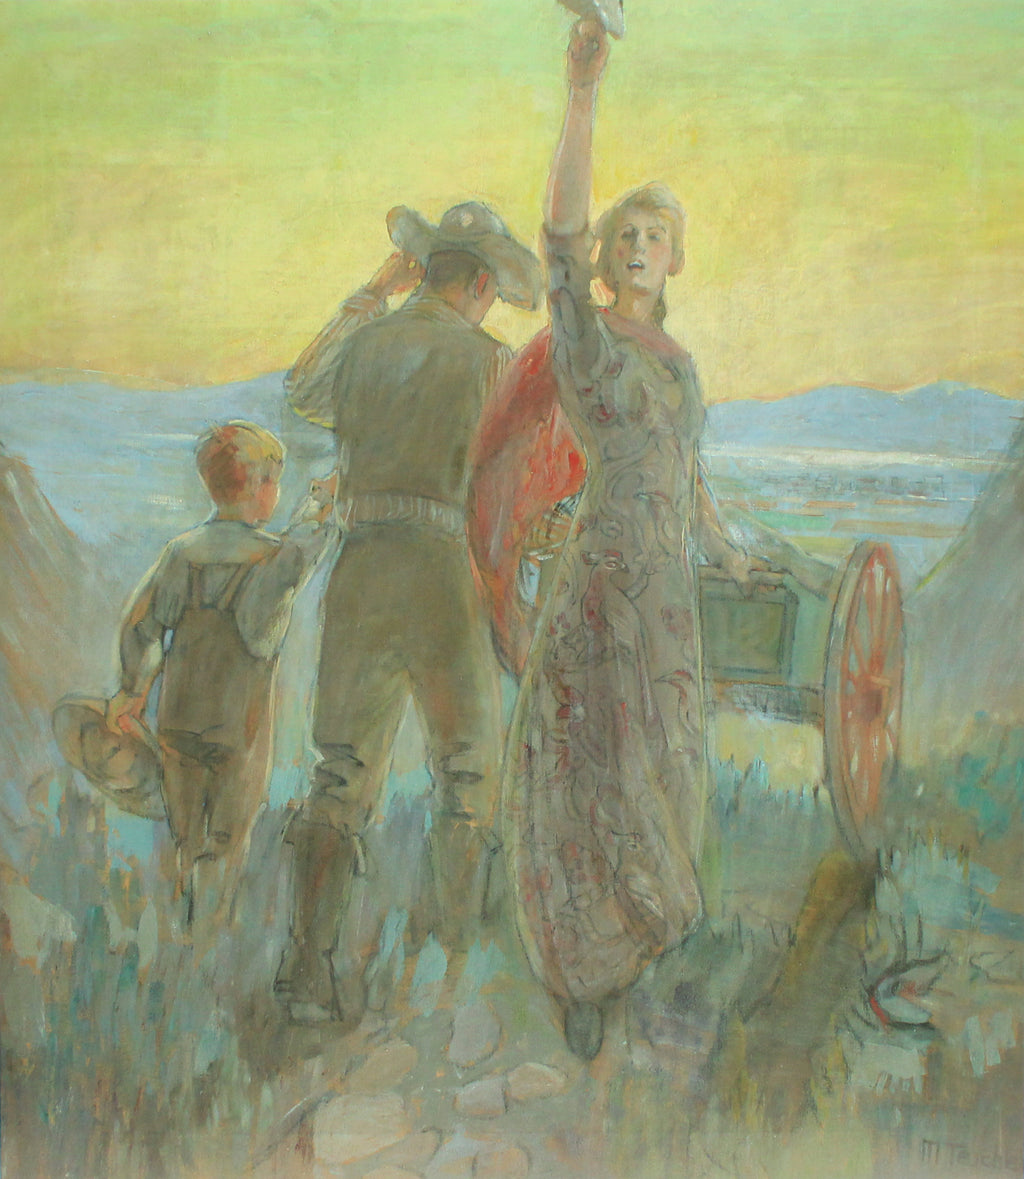 Zio Ho! Pioneer painting by Minerva Teichert.  Fine art prints for sale from High Desert Dry Goods